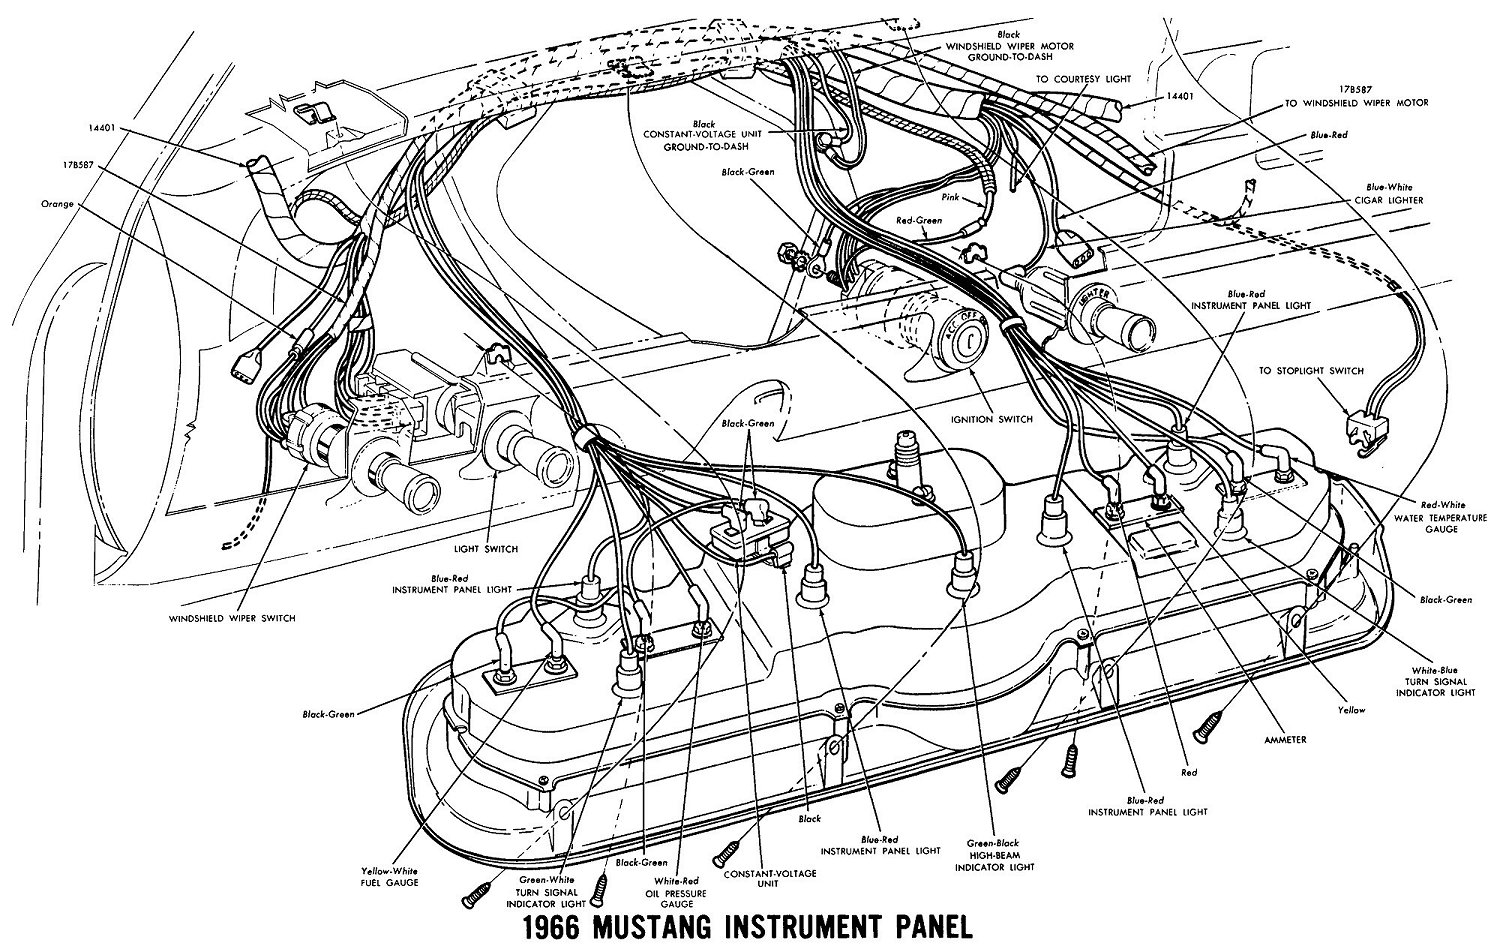 [SCHEMATICS_4FD]  Vintage Mustang Wiring Diagrams | 1966 Ford Mustang Wiring Diagram |  | jacobsonrs.tripod.com